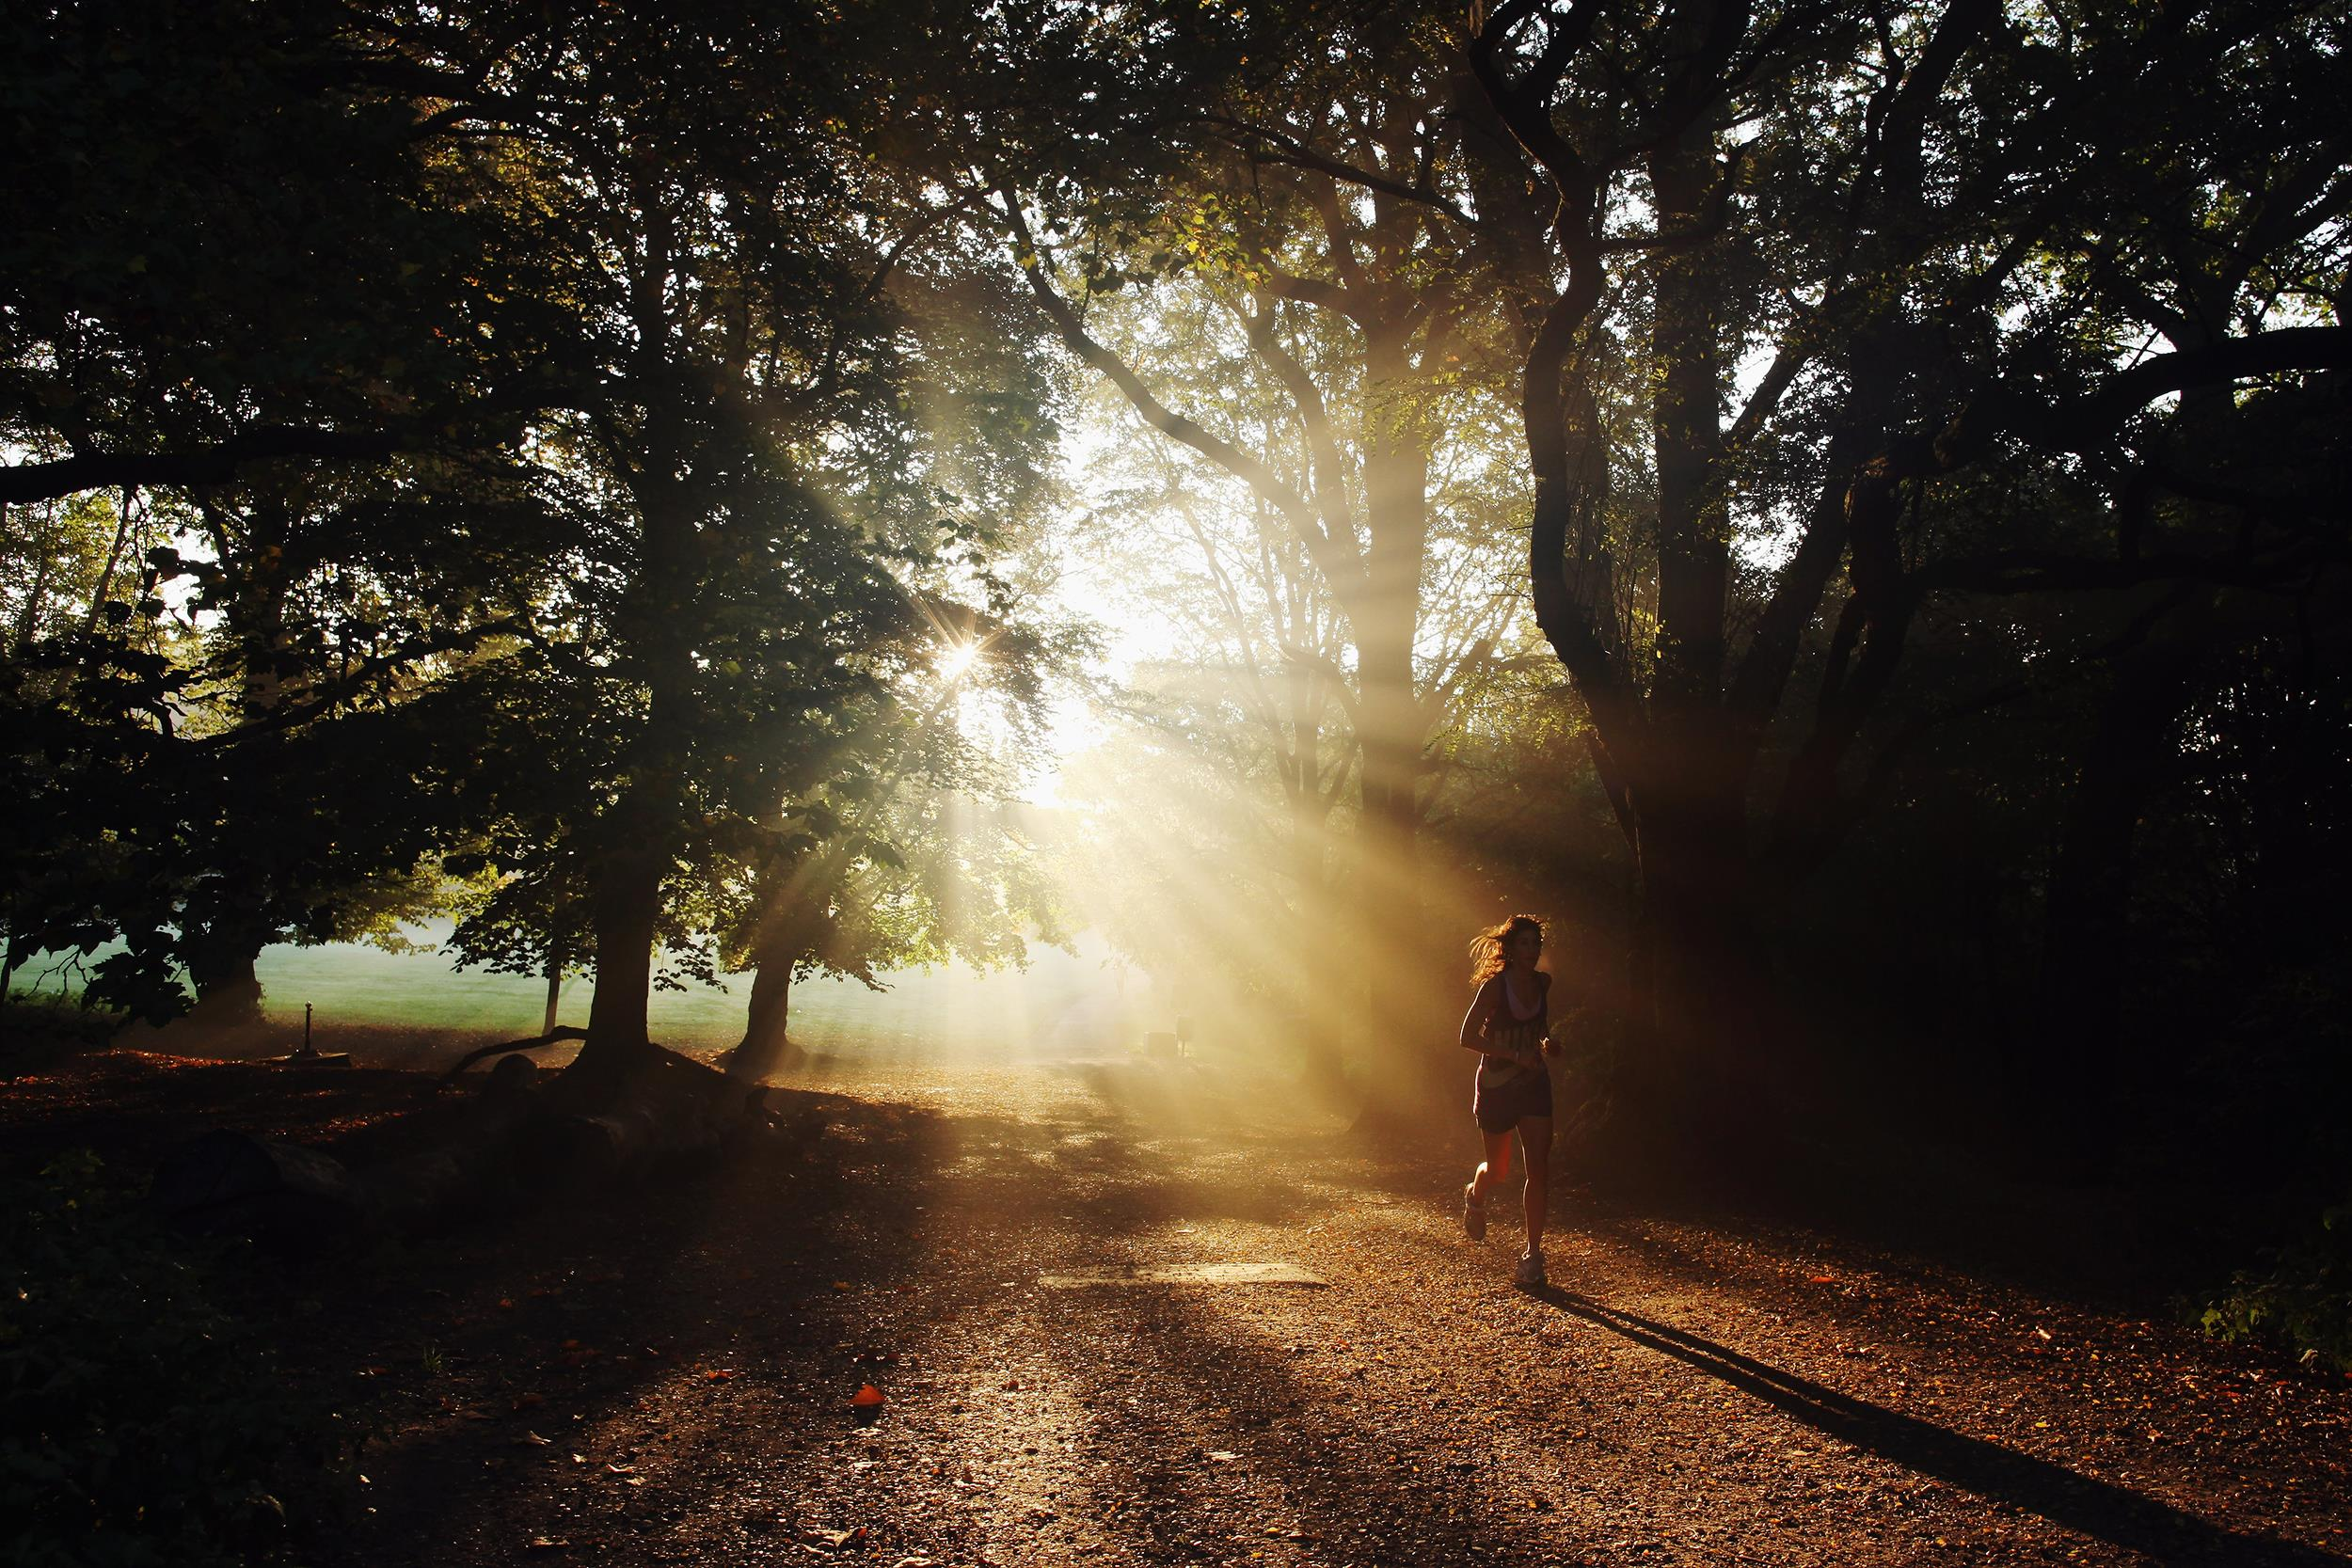 Image: A woman runs through the early morning light